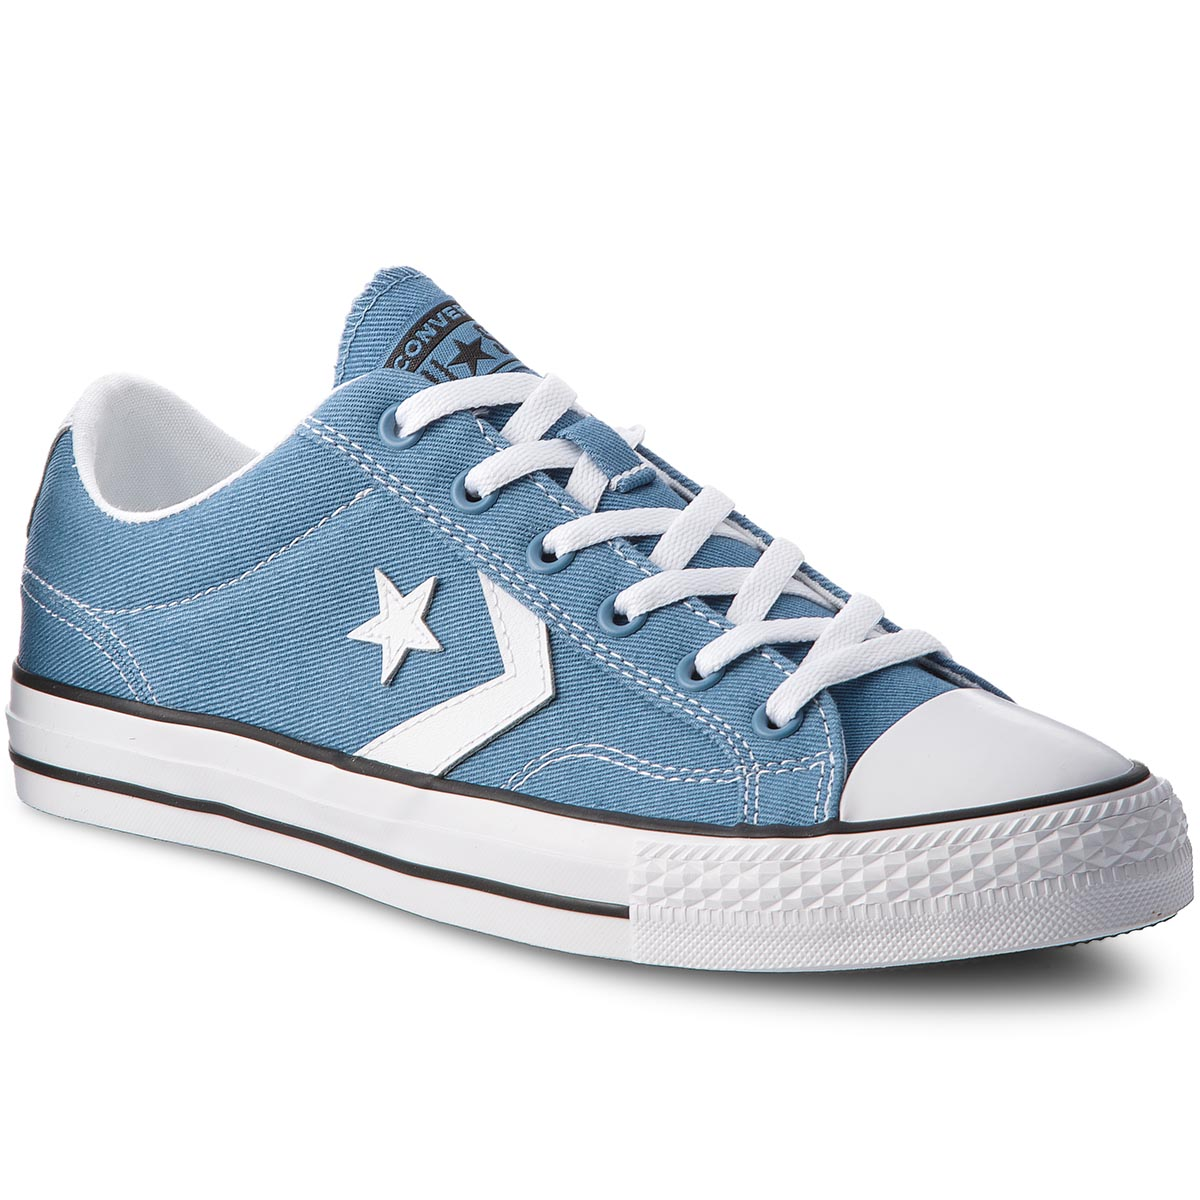 Trampki CONVERSE – Star Player Ox 160556C Aegean Storm/White/Black